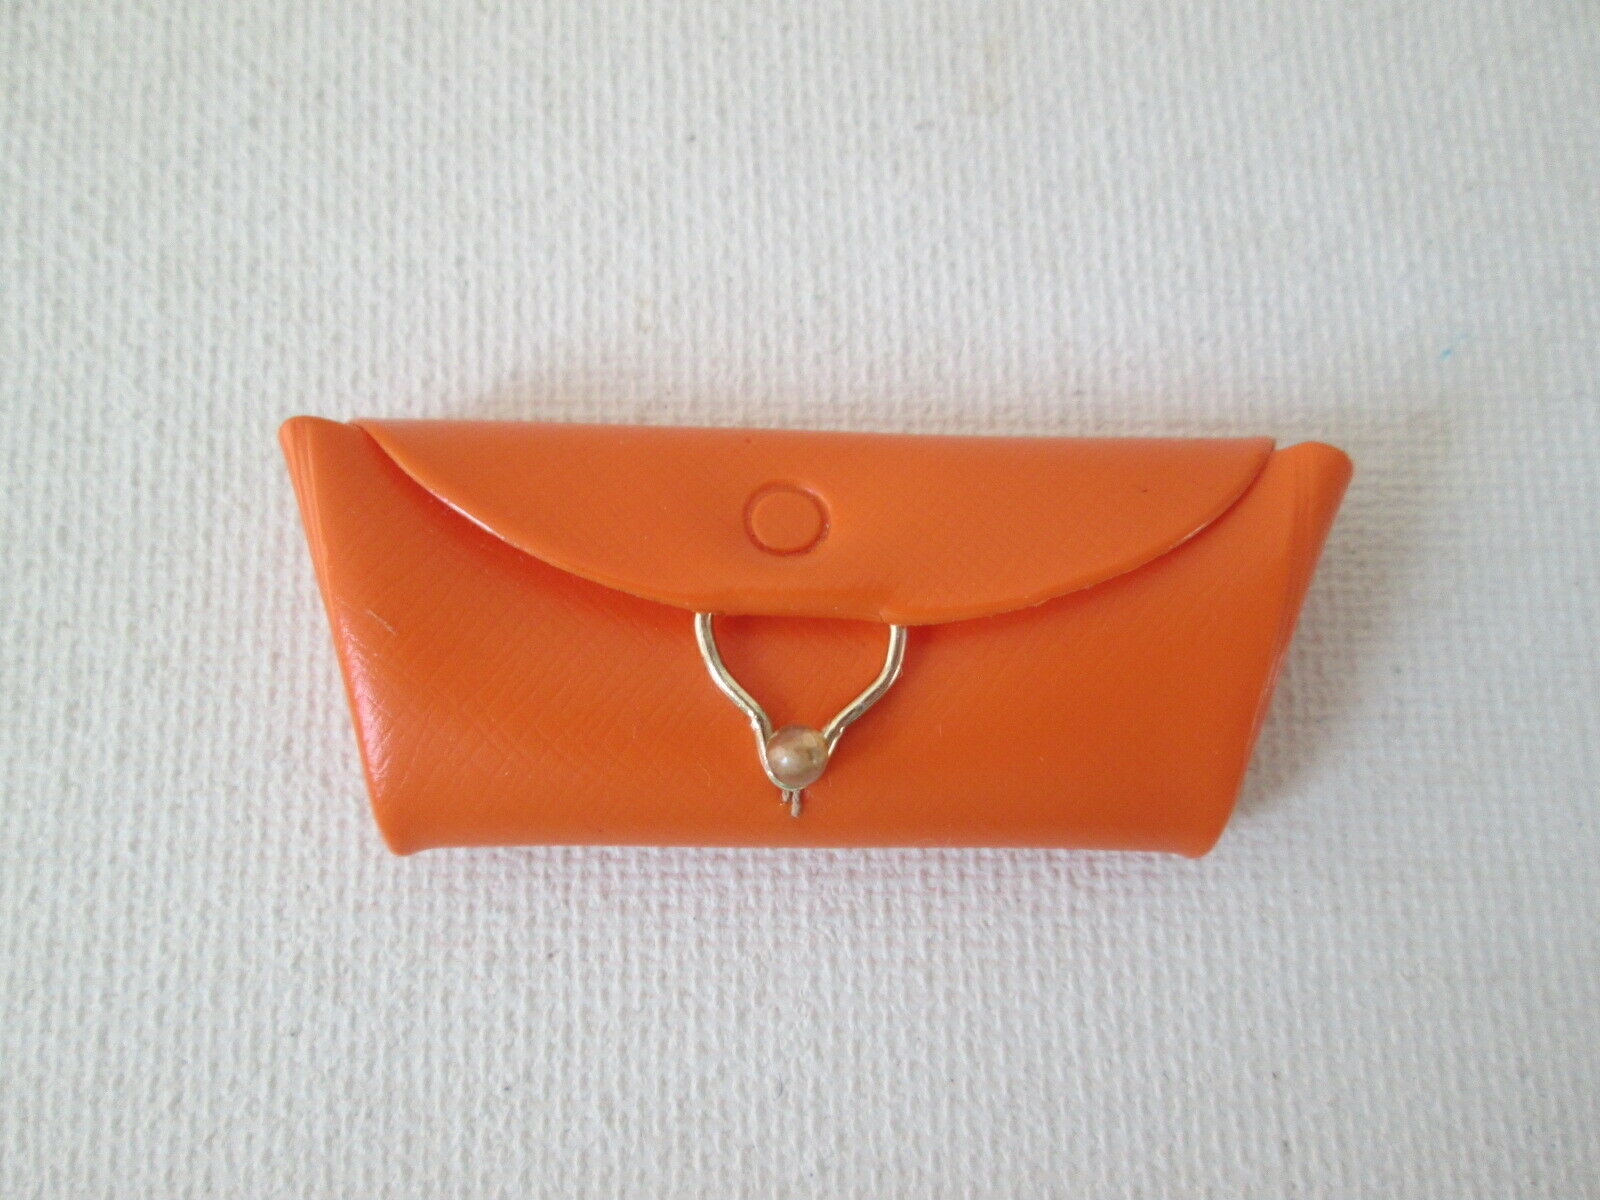 Vintage Barbie 1603 Country Fair Orange Vinyl Clutch Purse - $5.50